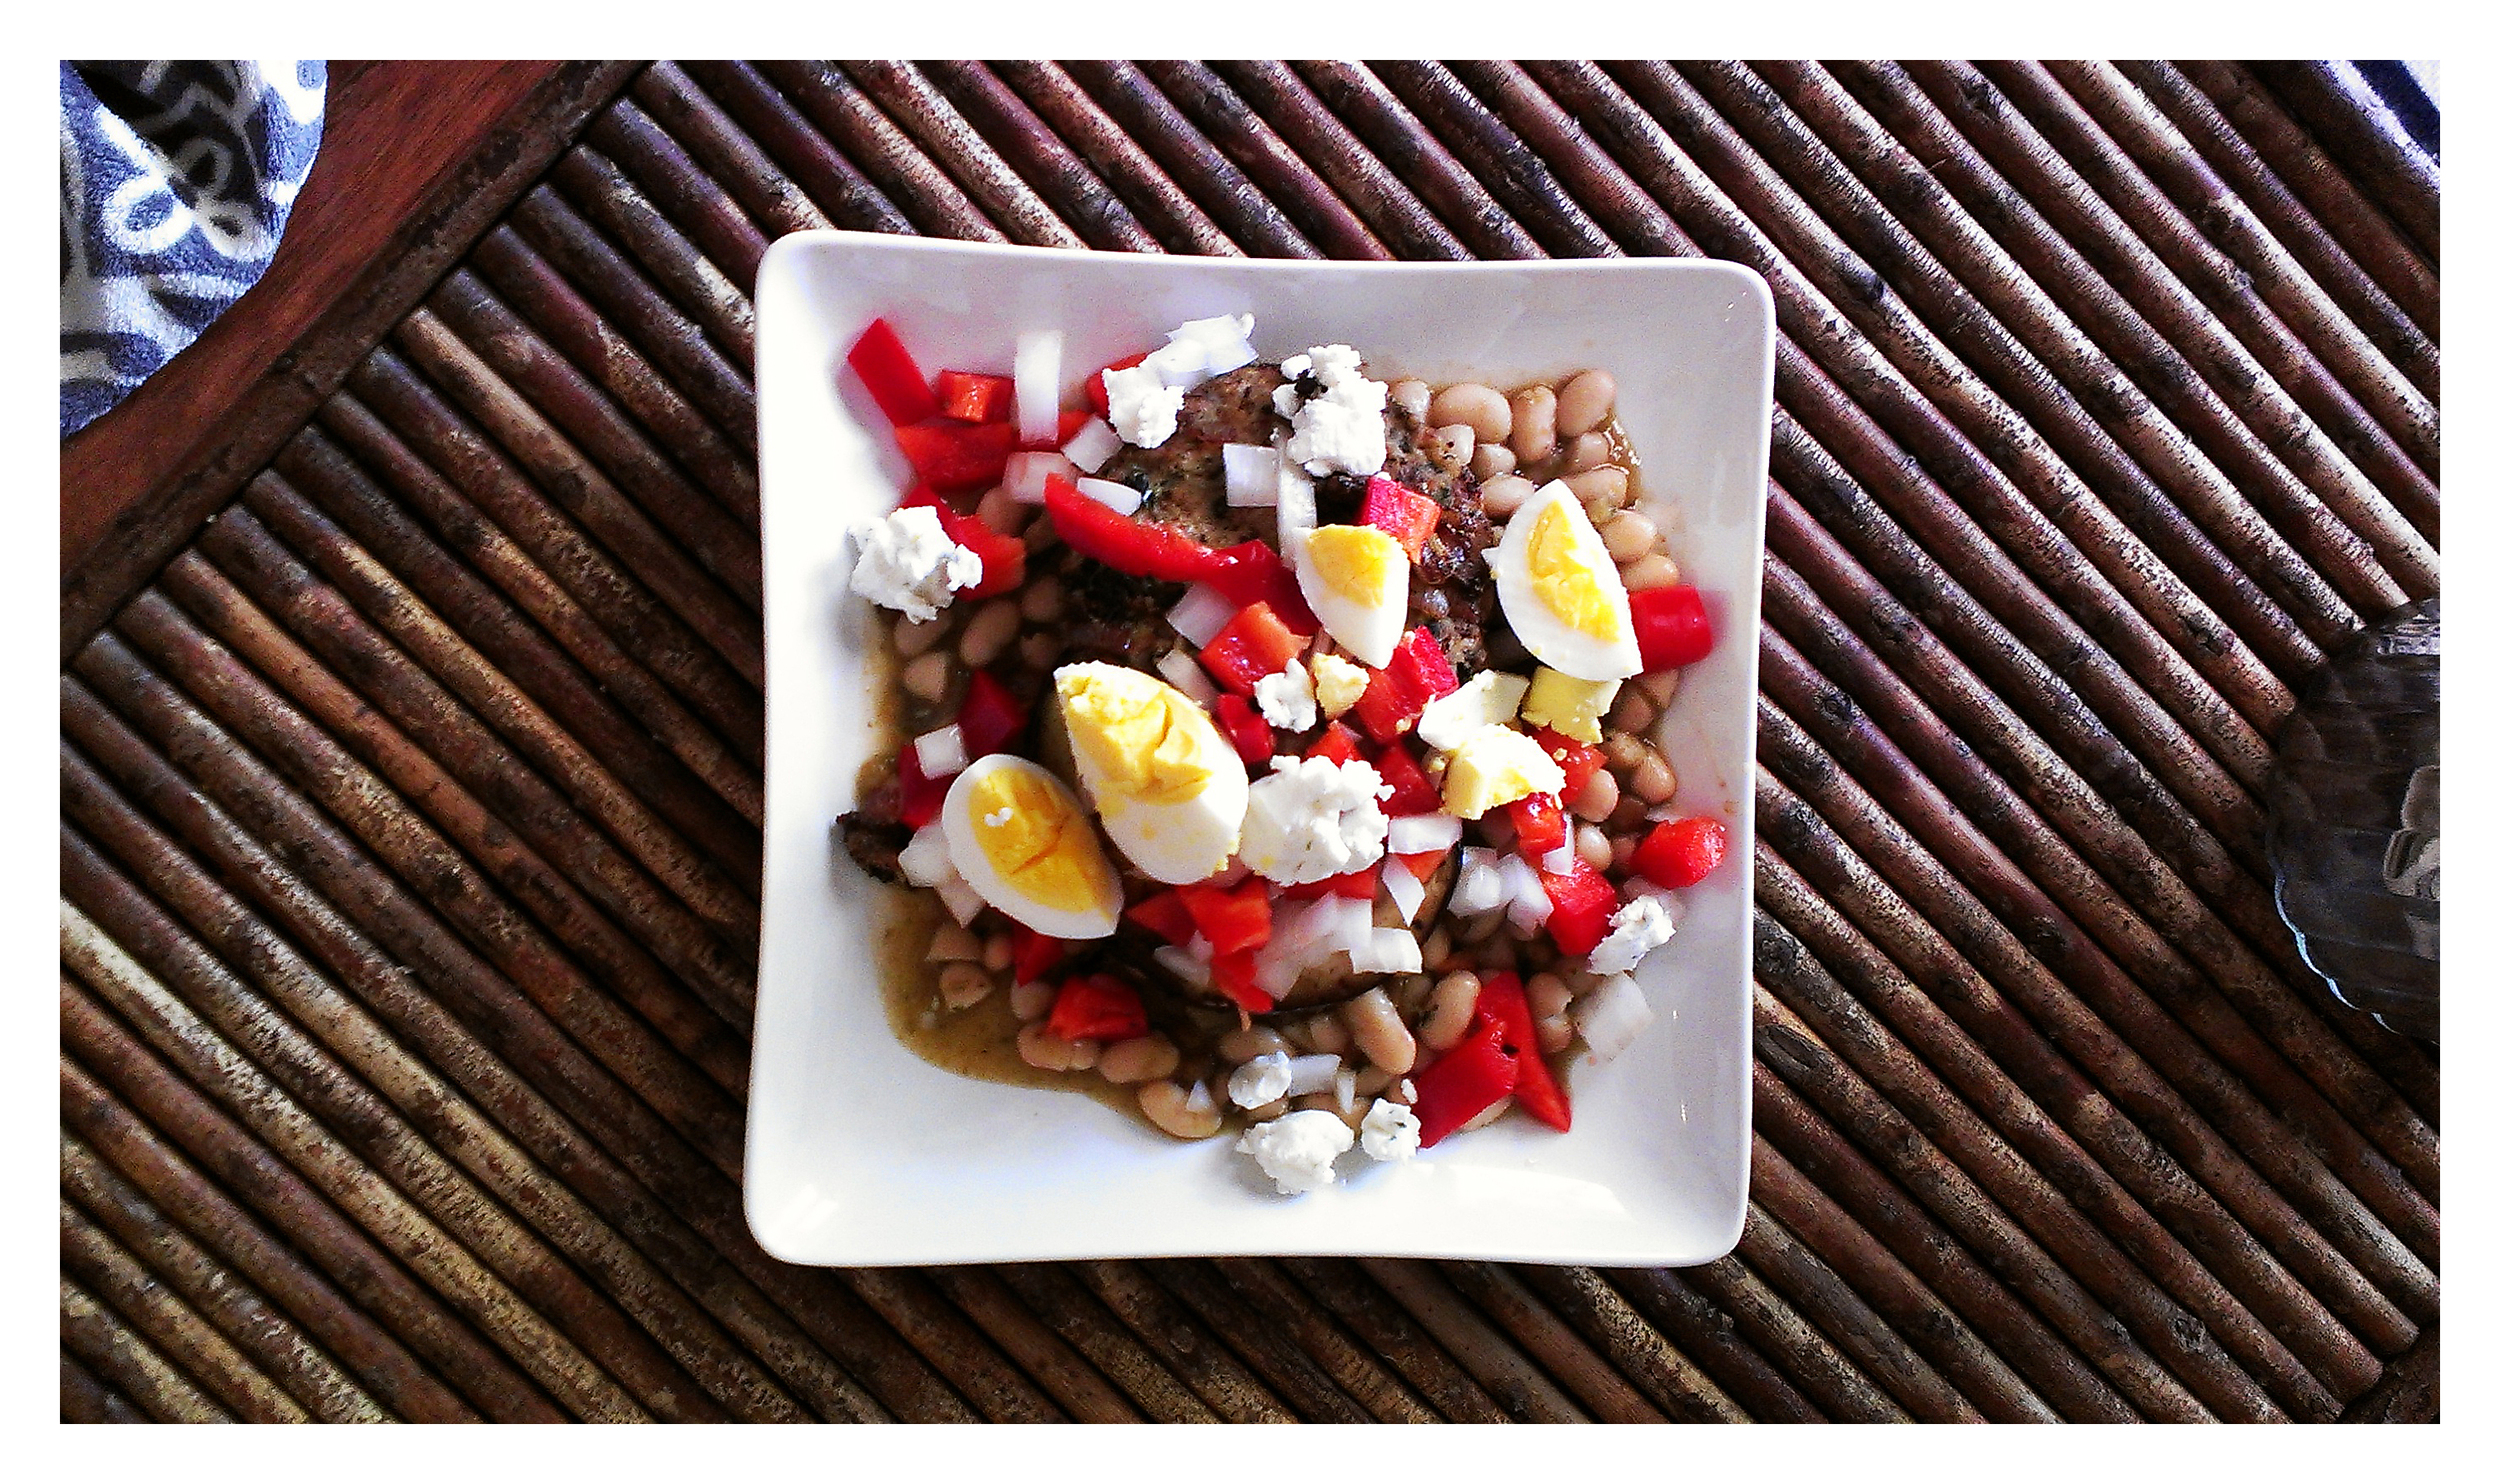 Frijoles Con Sol! Delicious Summertime Lunch – journeyeastofthesun.com